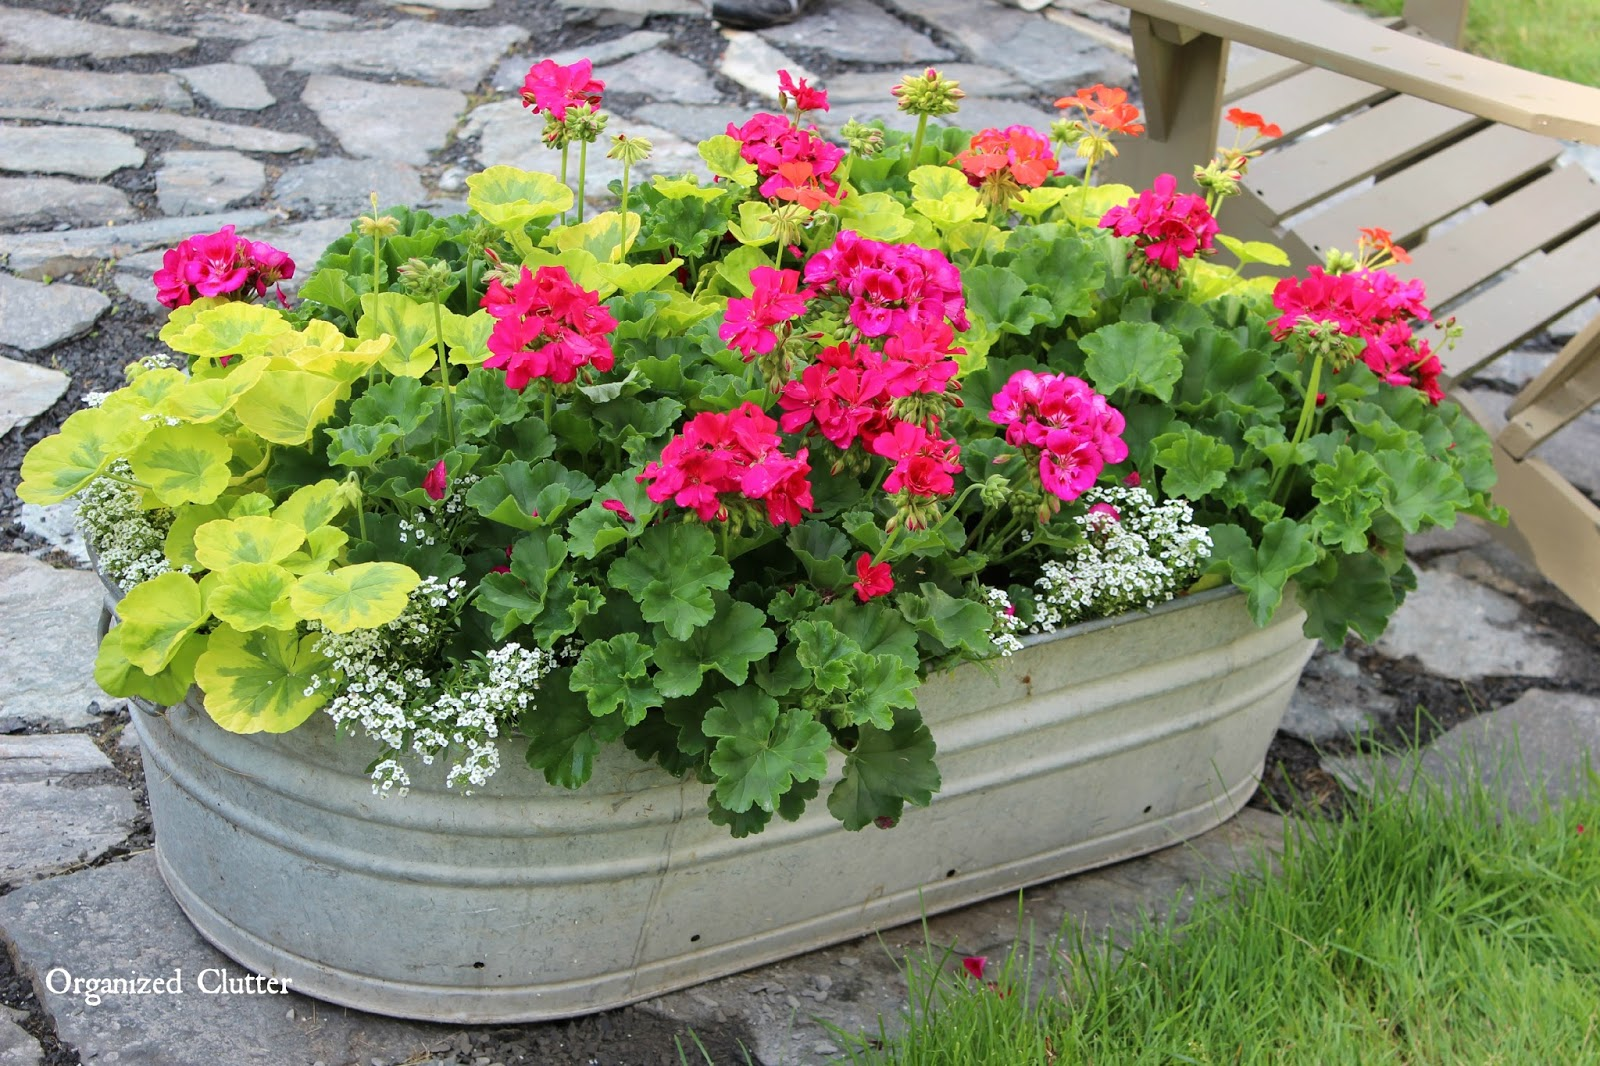 More beautiful flowers in junky containers organized clutter galvanized garden love organizedclutter izmirmasajfo